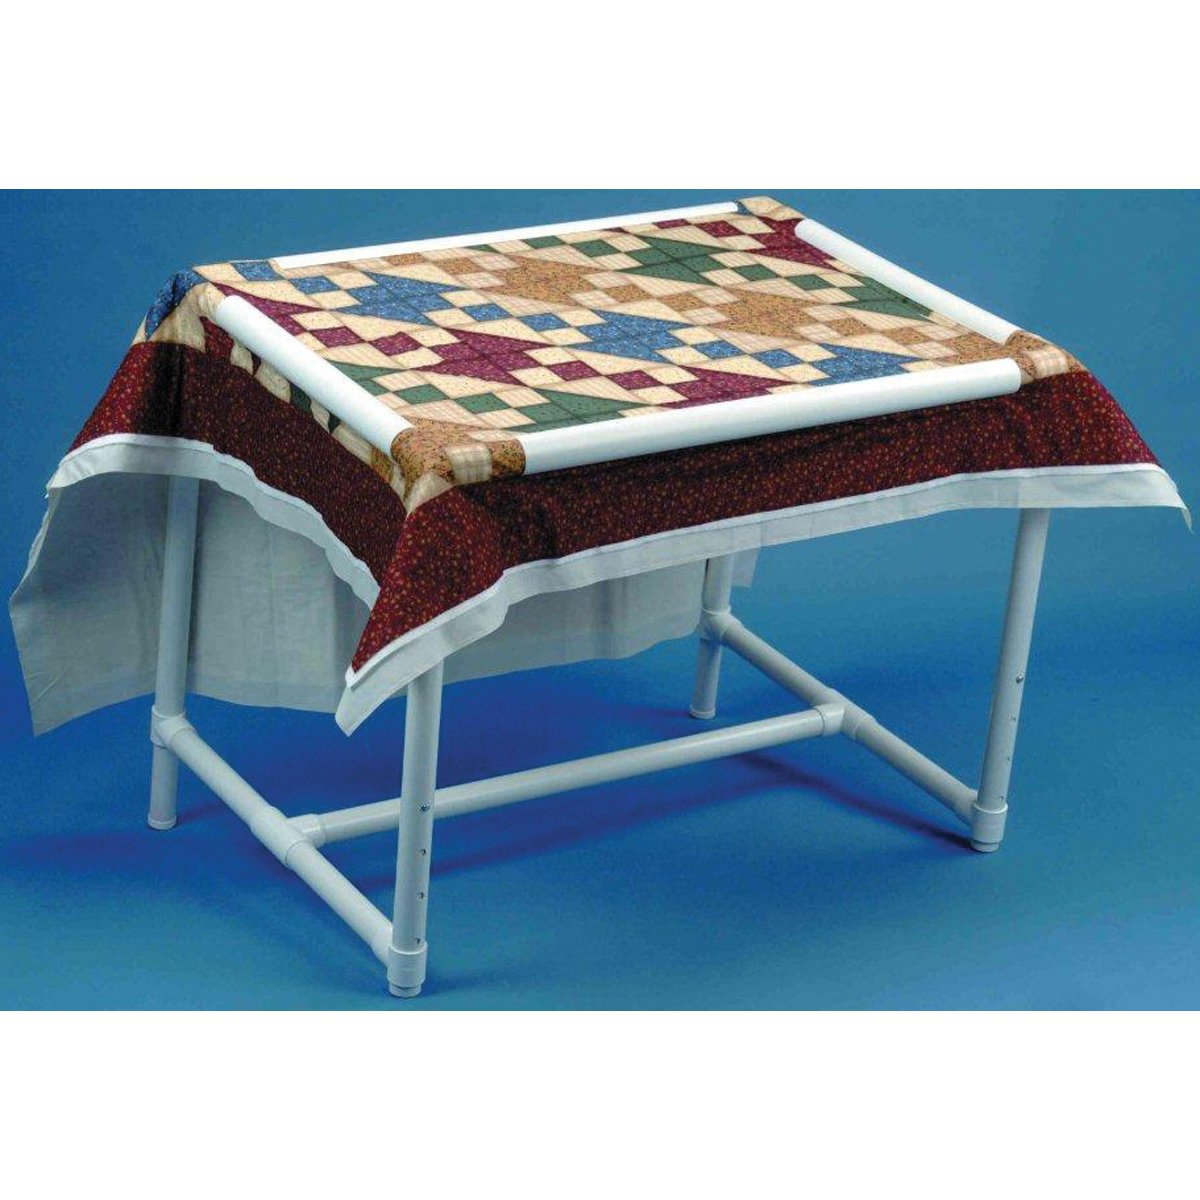 Attractive Pvc Quilt Frame Component - Framed Art Ideas ...